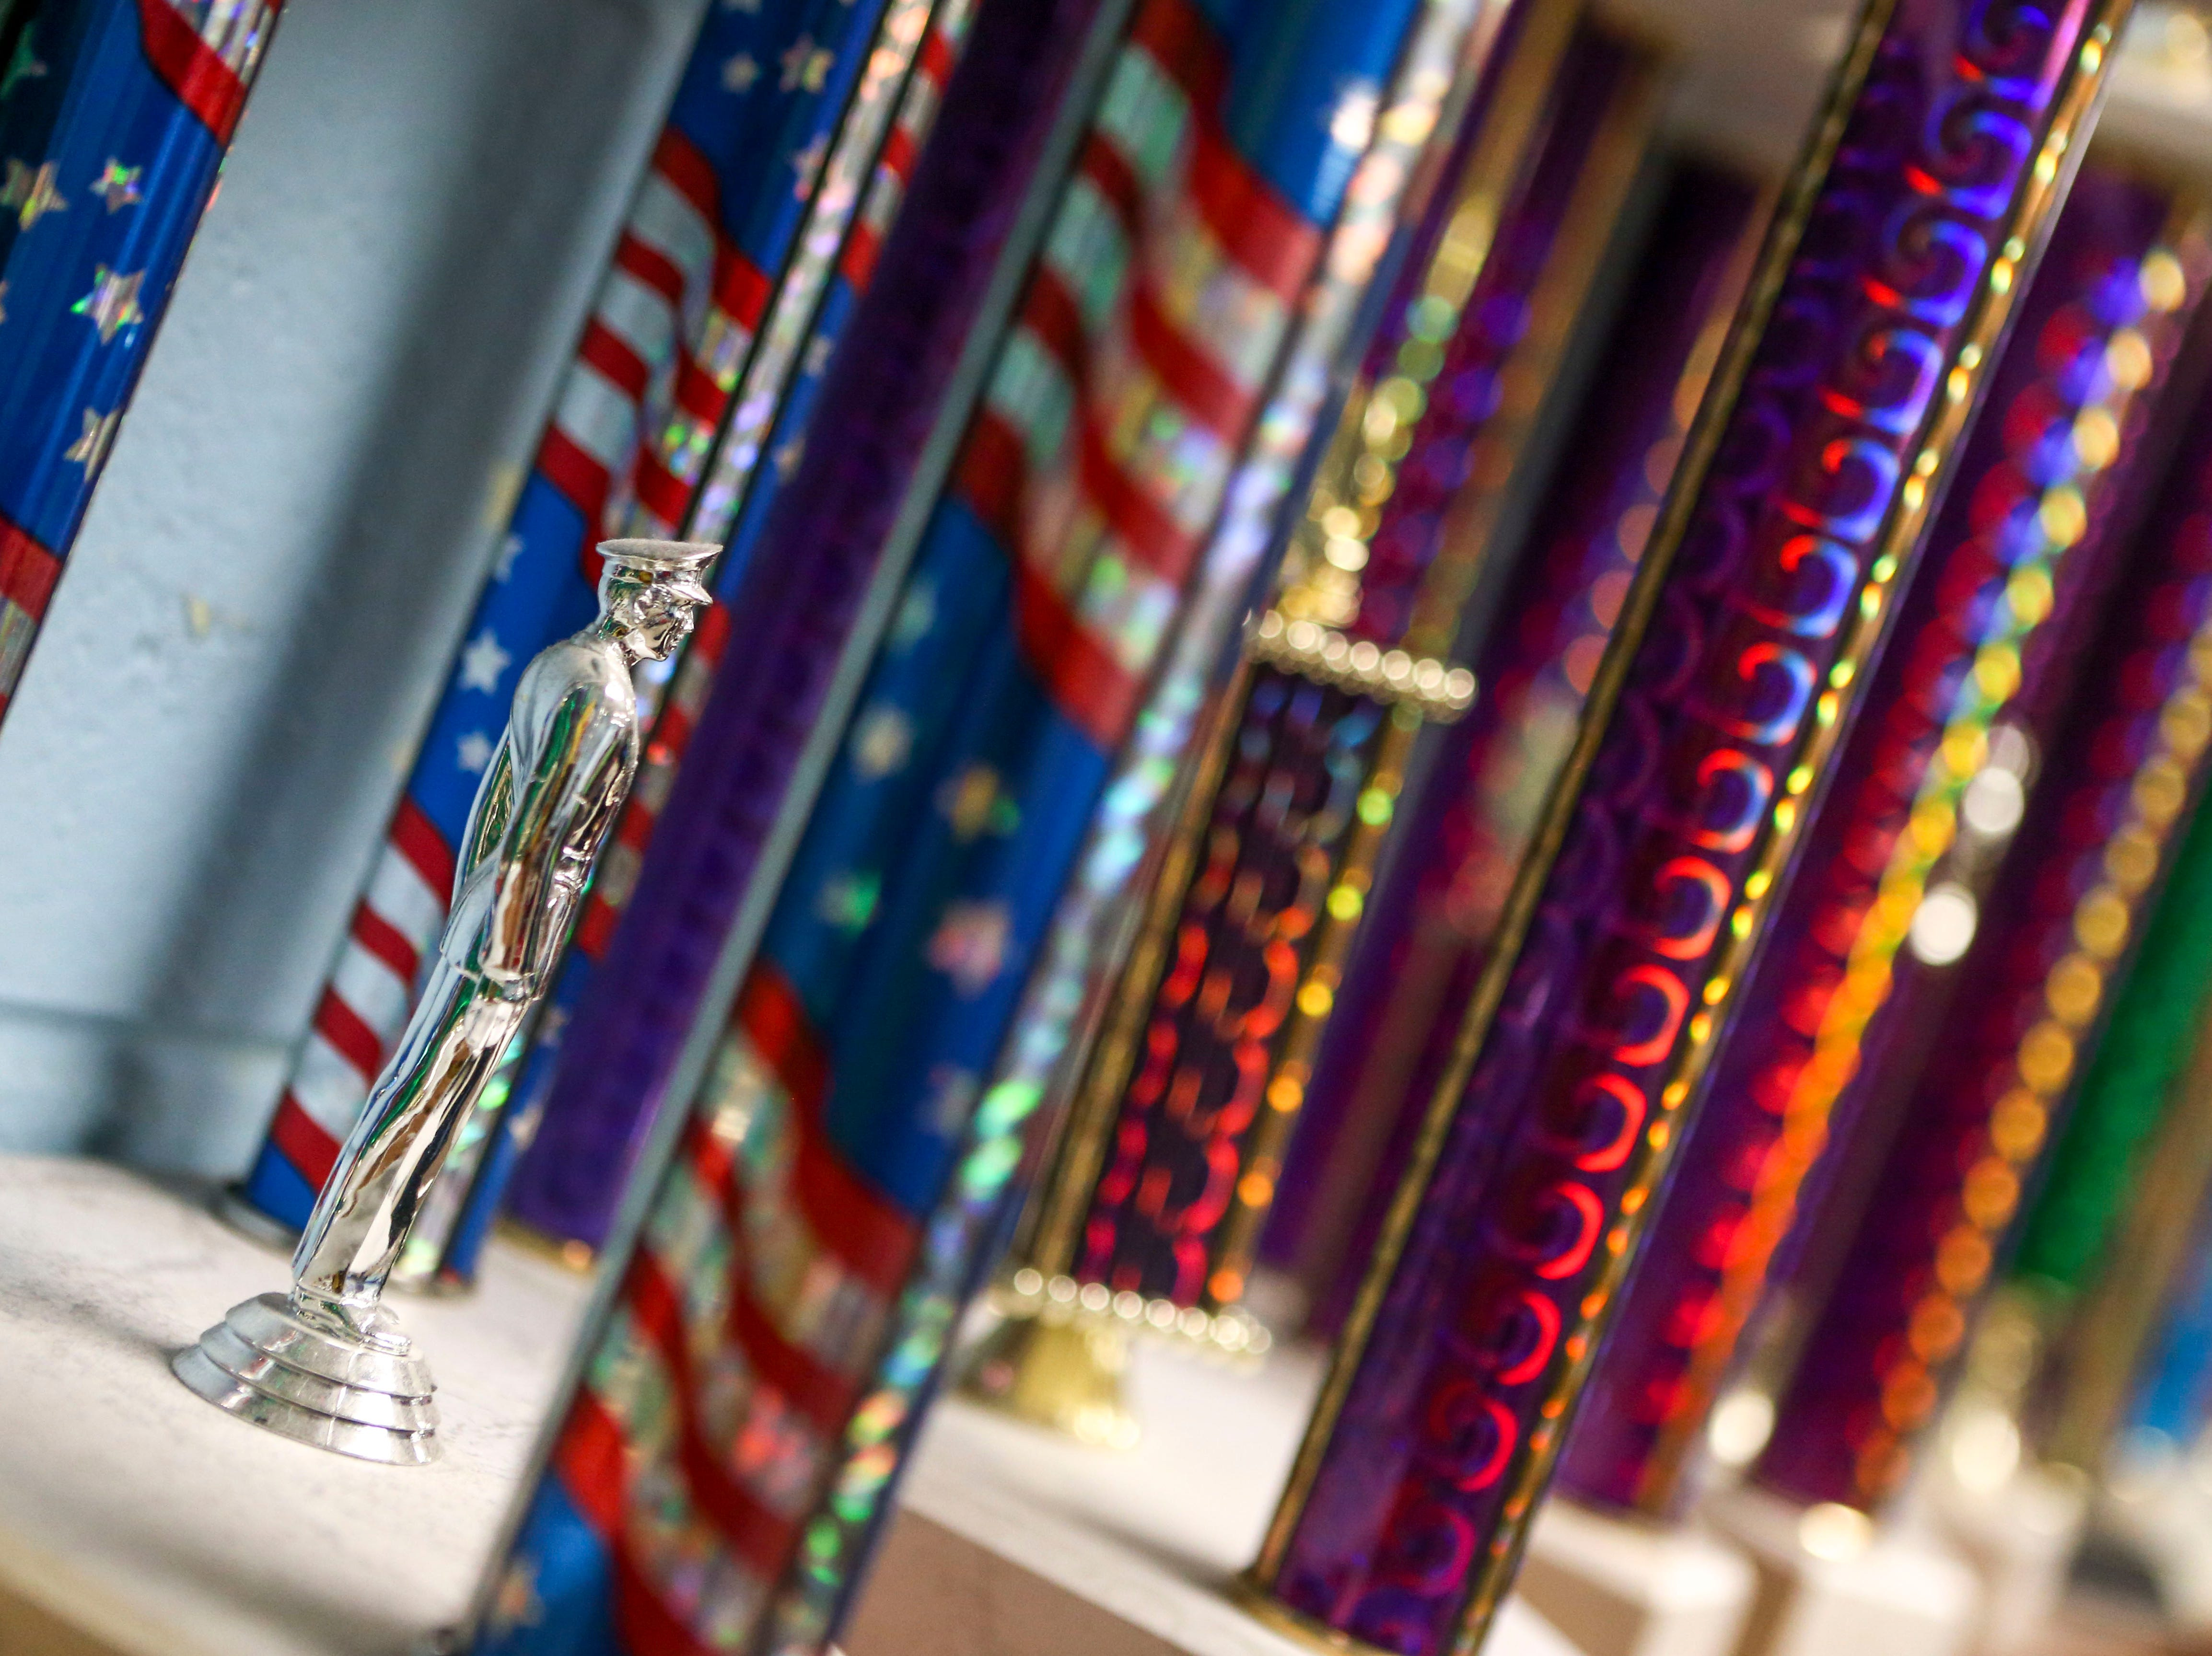 Trophies and awards line the shelves of the classroom during ROTC class at Lexington High School in Lexington, Tenn., on Wednesday, Feb. 6, 2019.